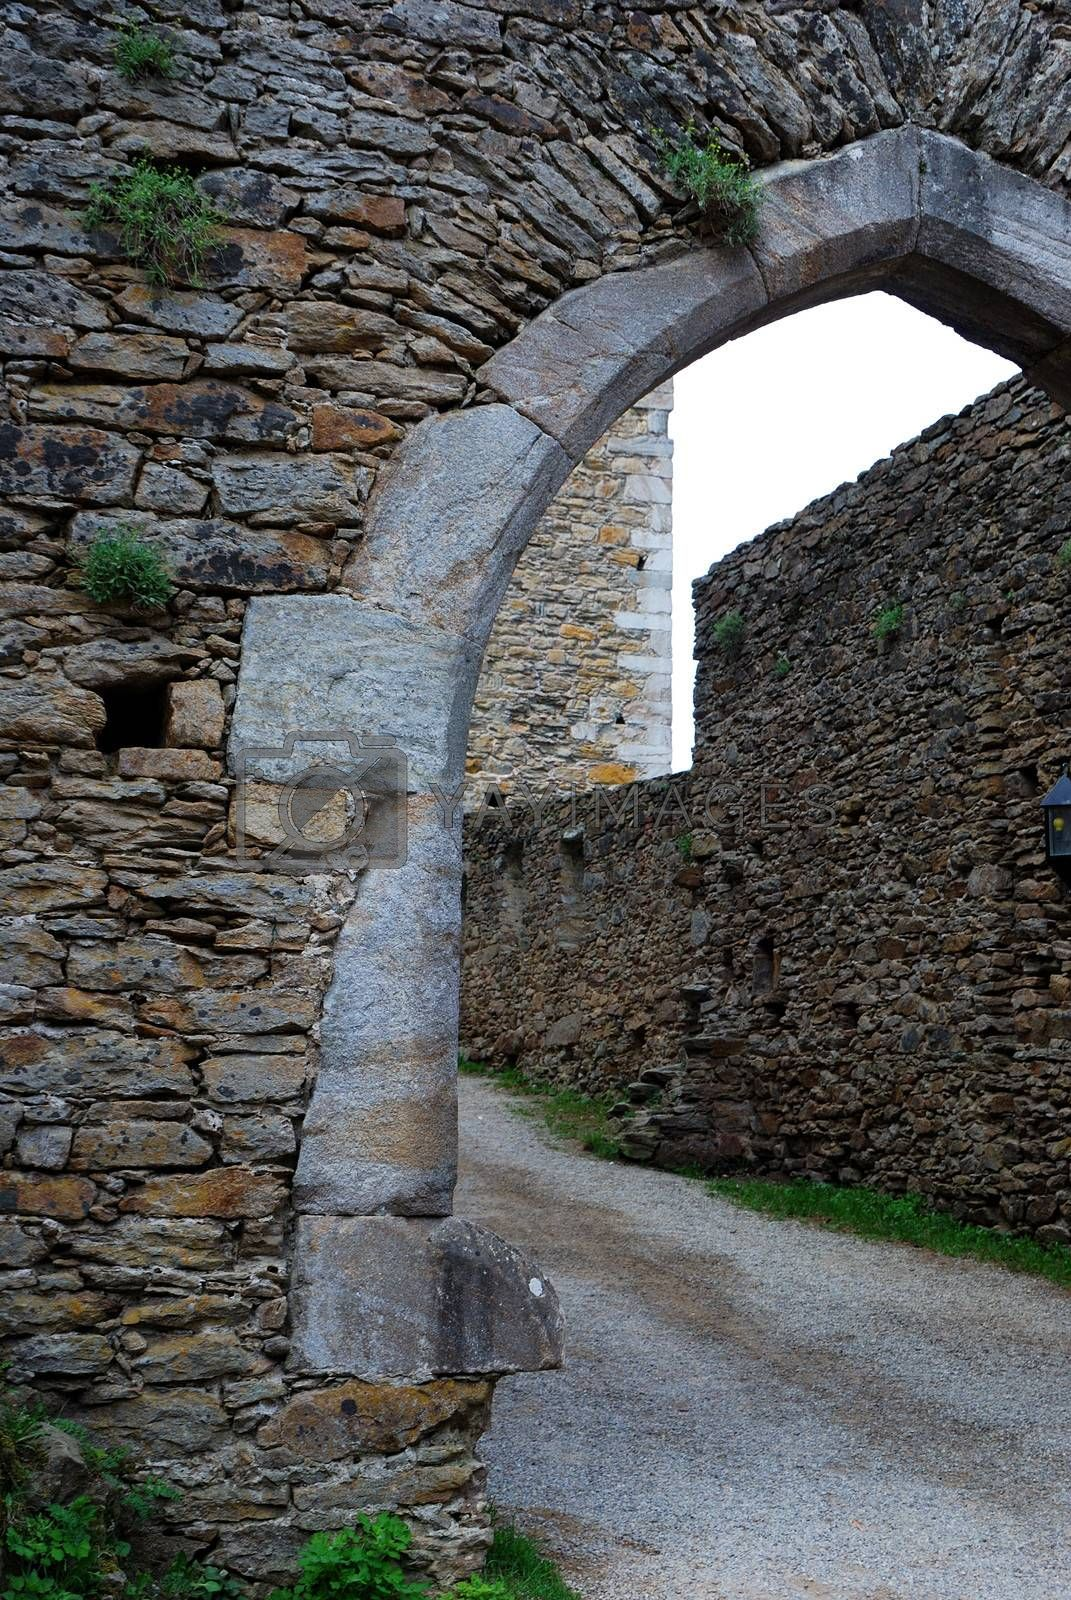 old castle gate passage of stone